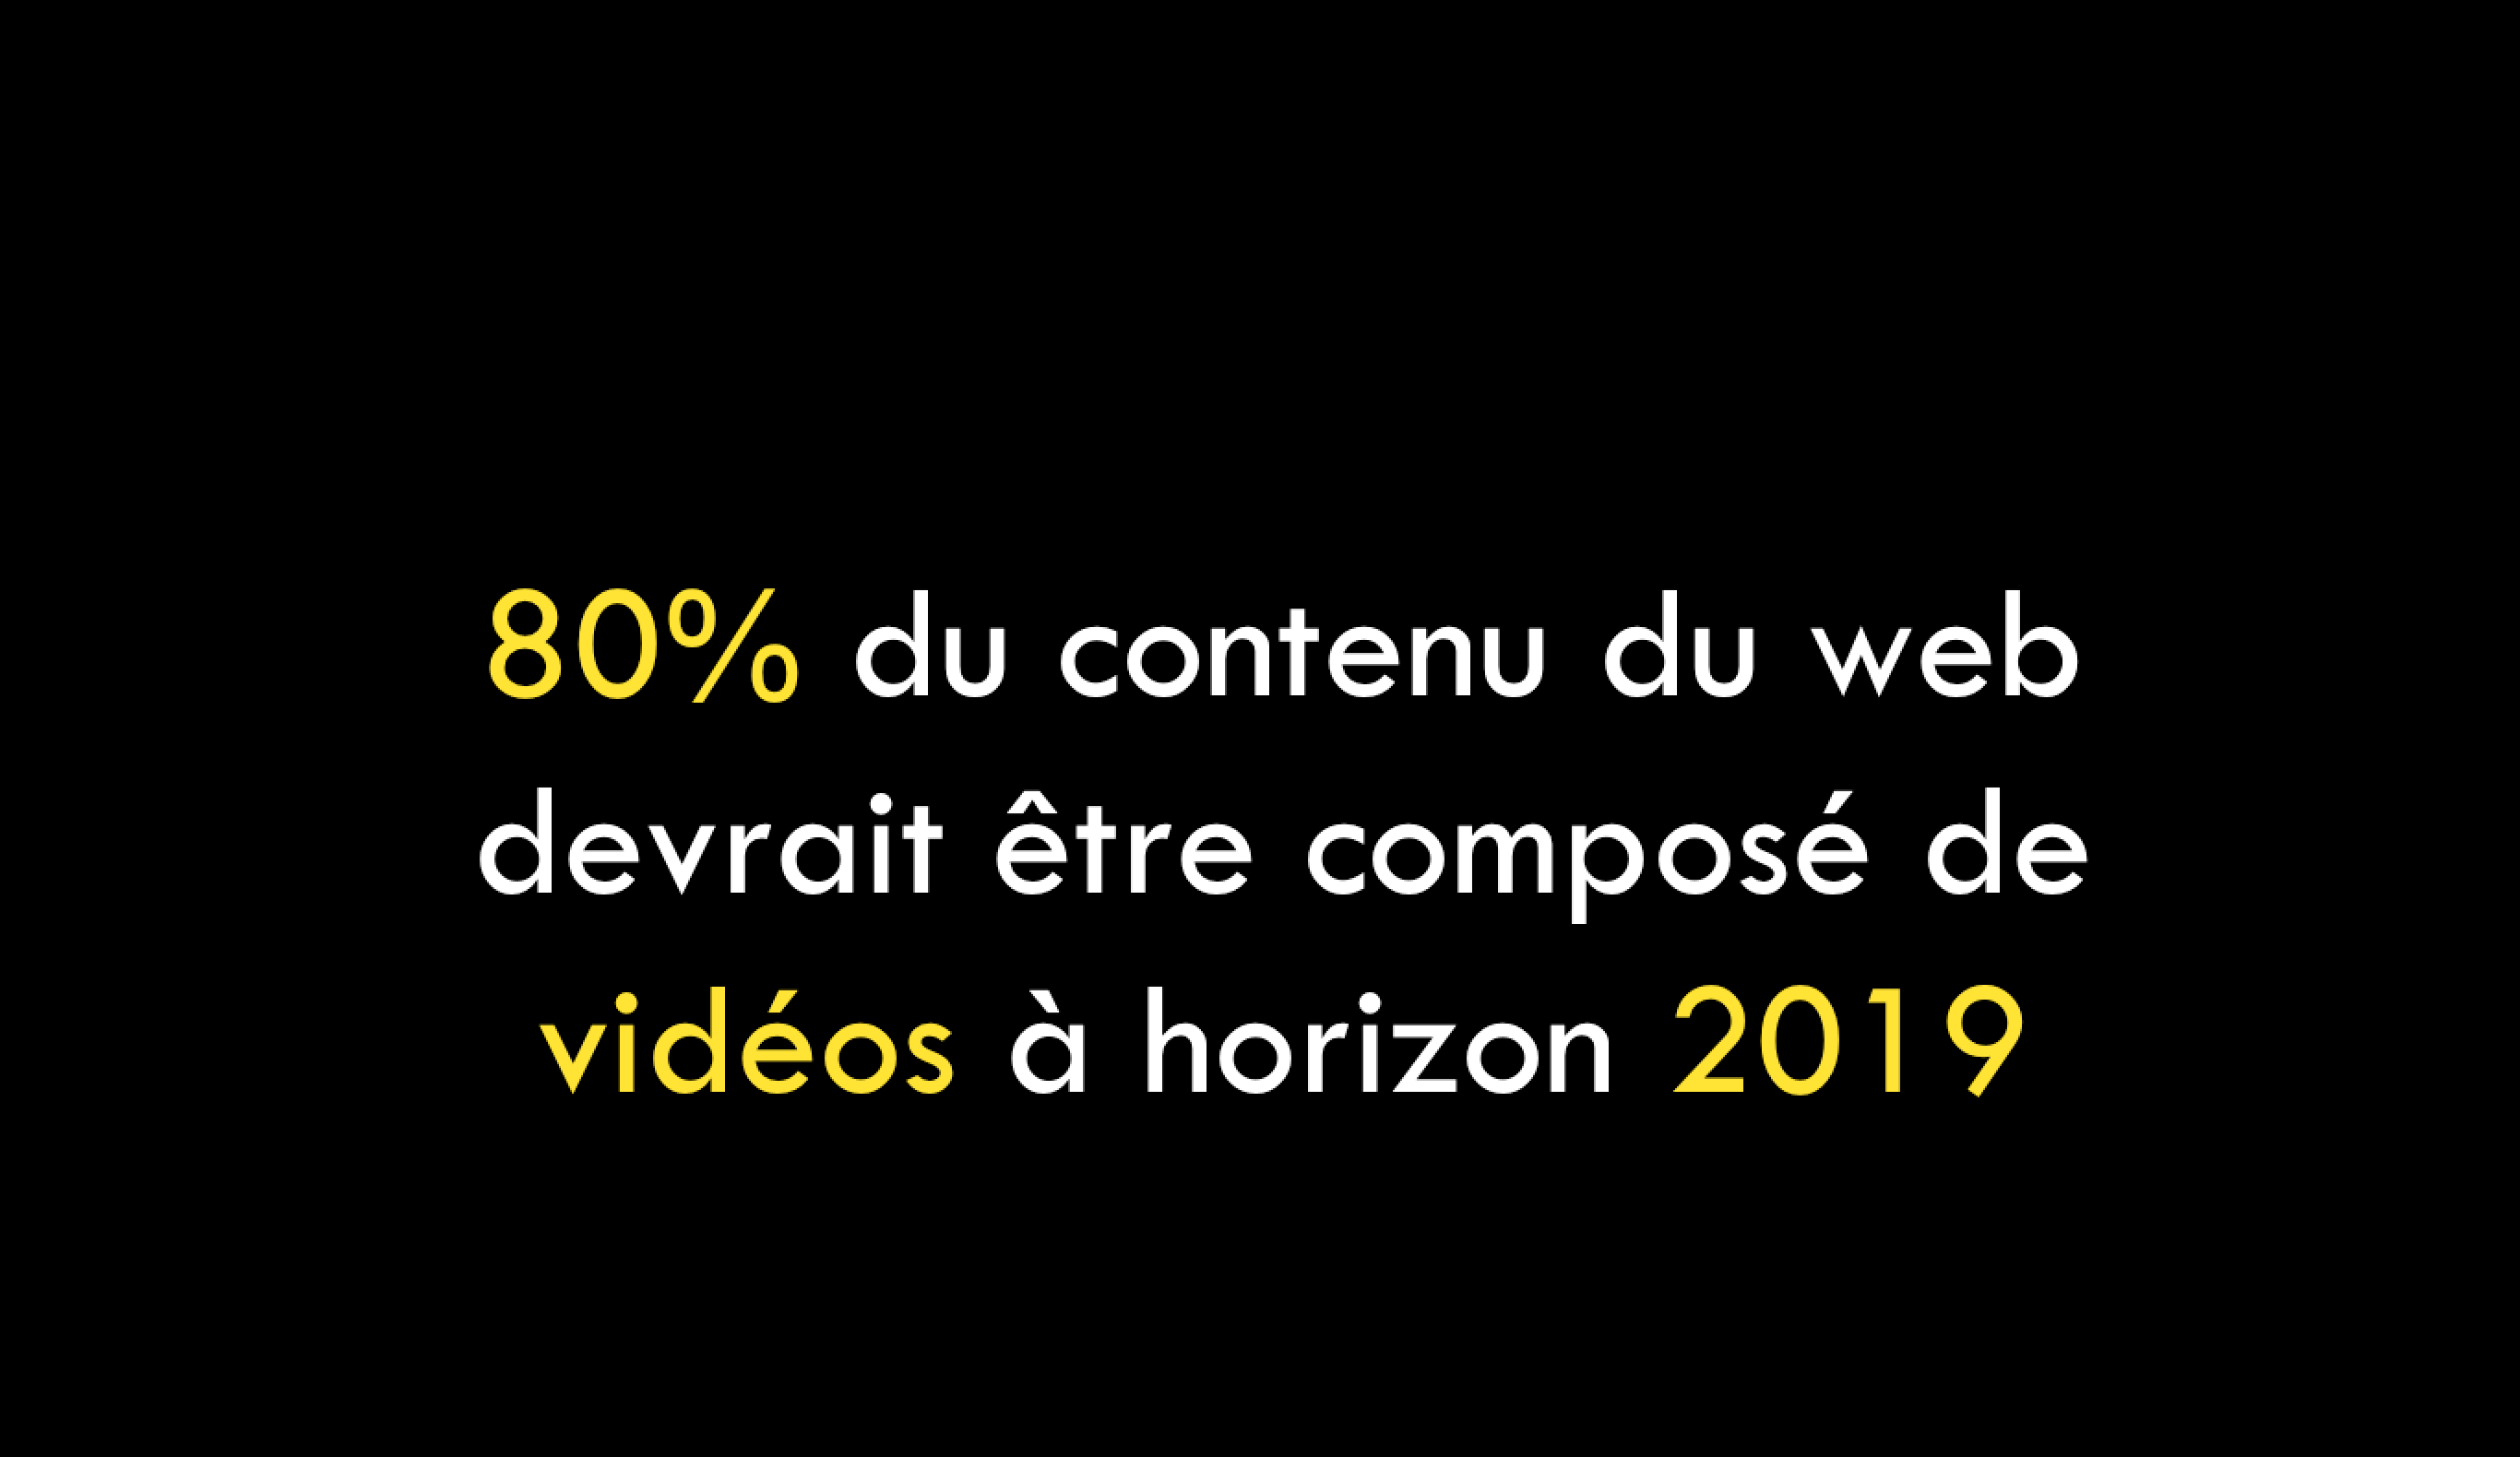 video live tendance digitale